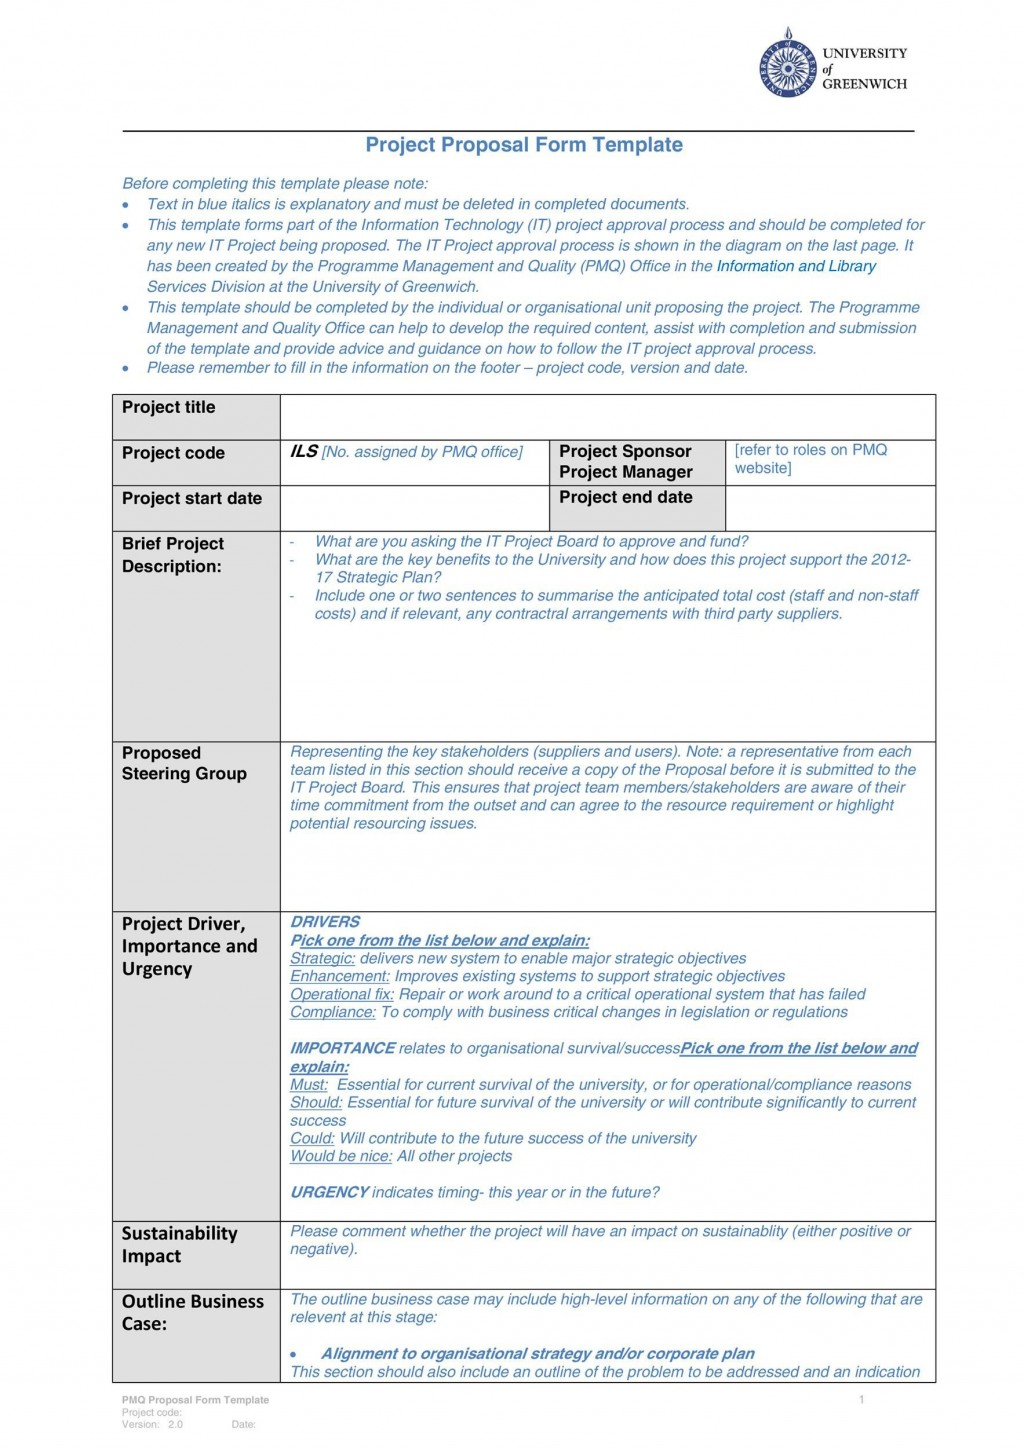 007 Top Free Project Proposal Template Inspiration  Document Ppt PdfLarge